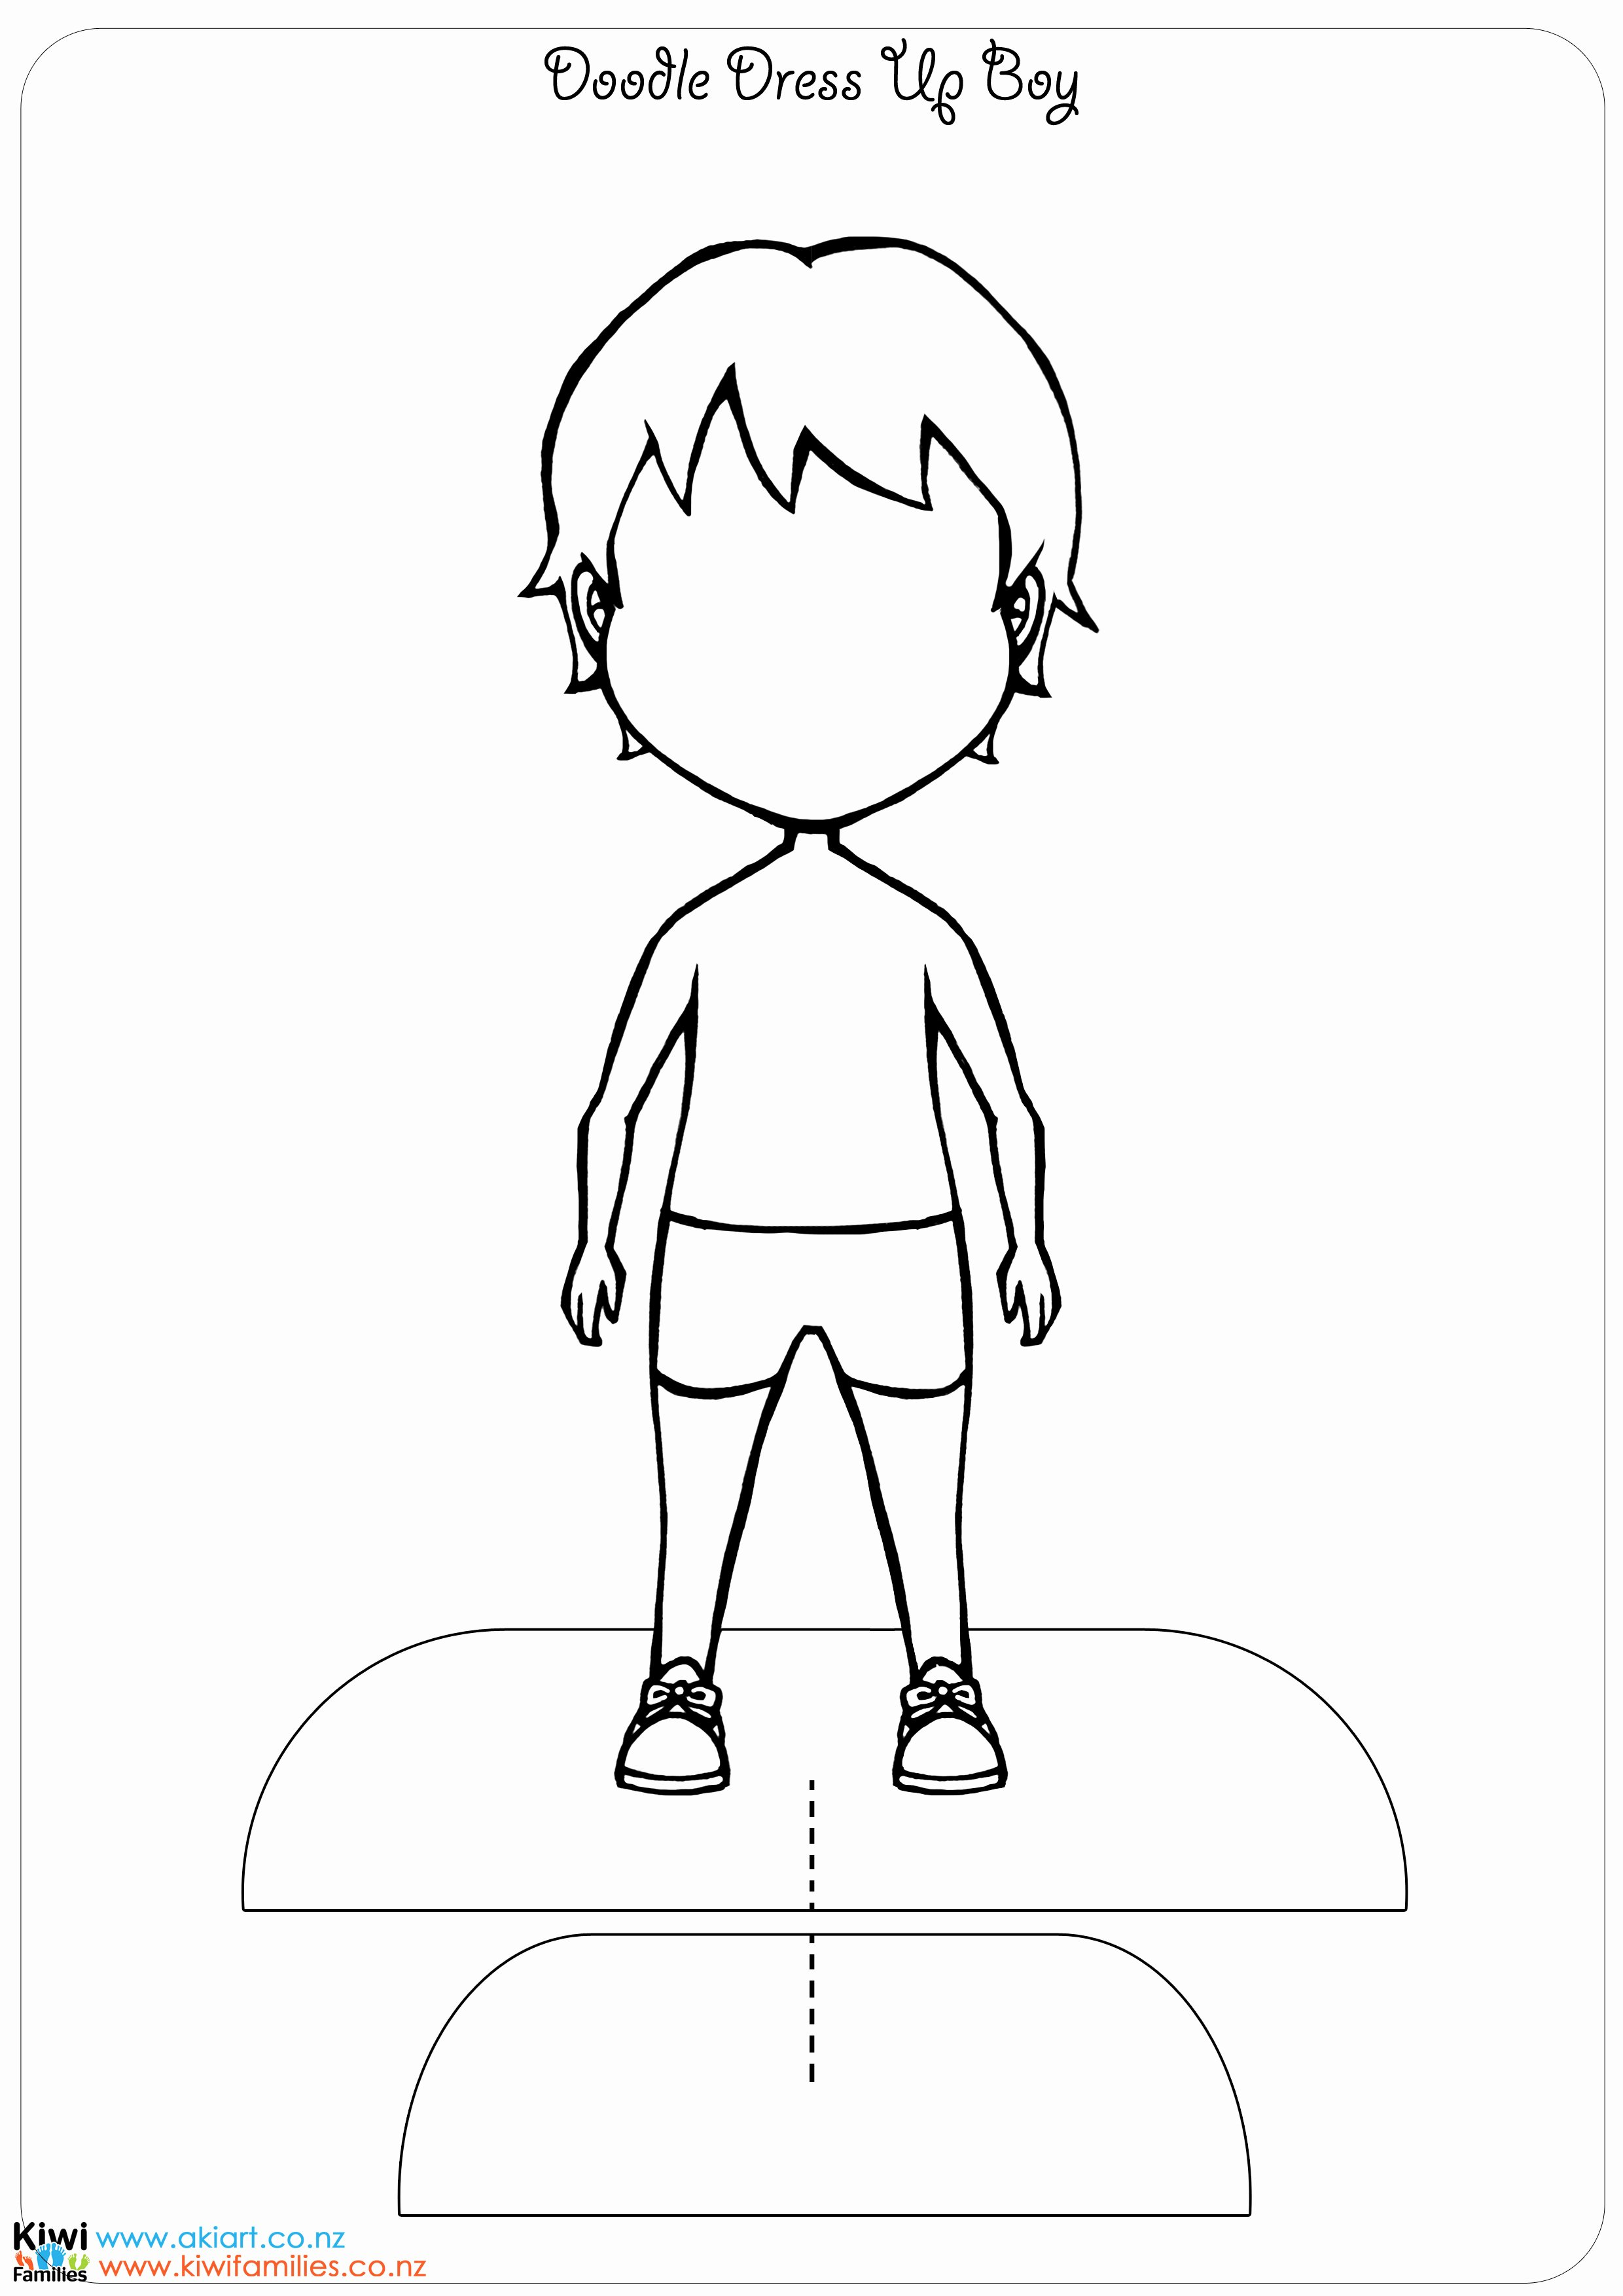 Paper Doll Clothing Template Luxury Make Your Own Paper Dolls Kiwi Families